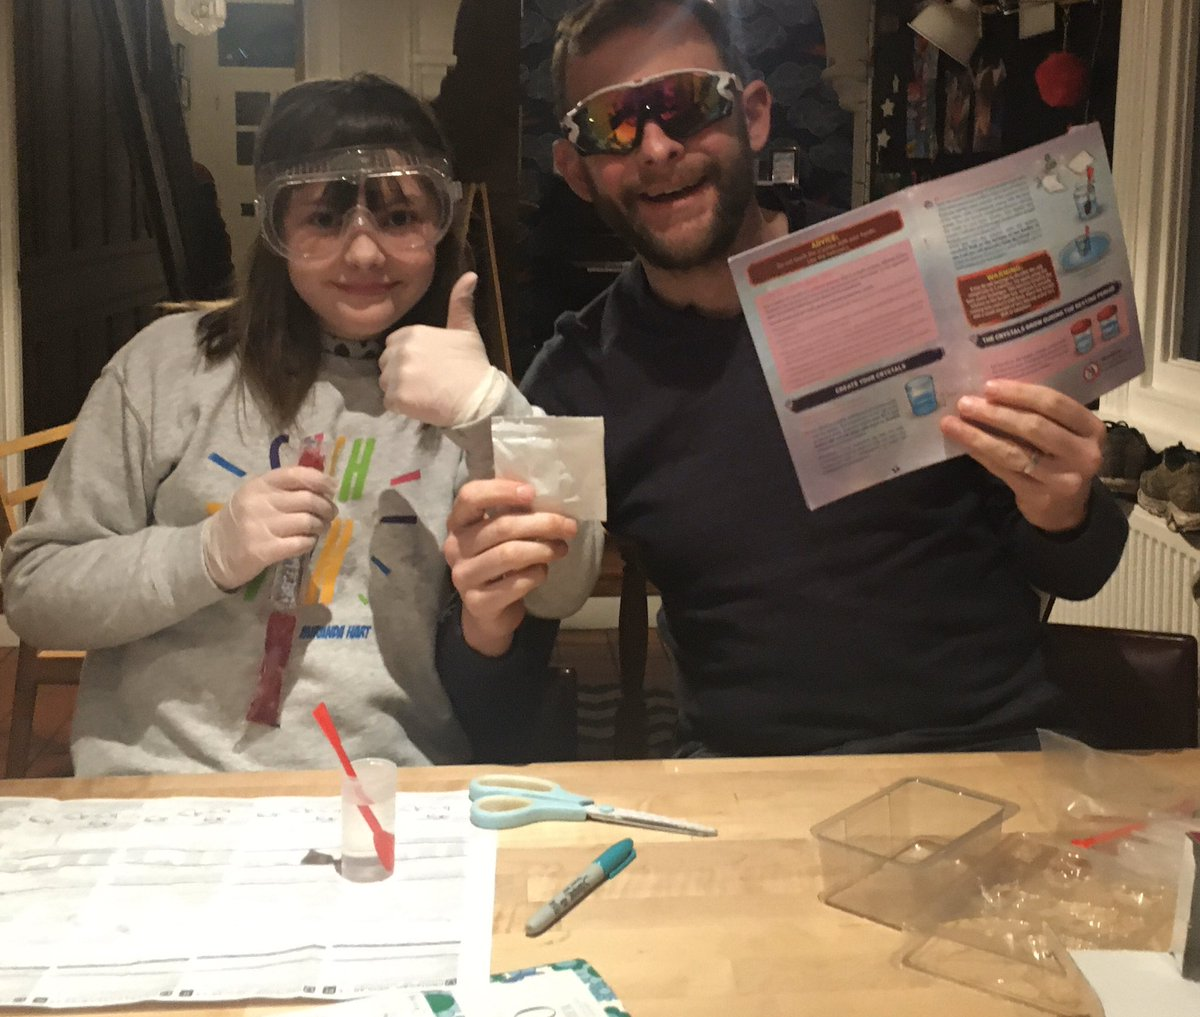 It's #science night. Making crystals with Mollie. I'm using improvised goggles, just to be sure you understand  pic.twitter.com/RHf0MUlw1W